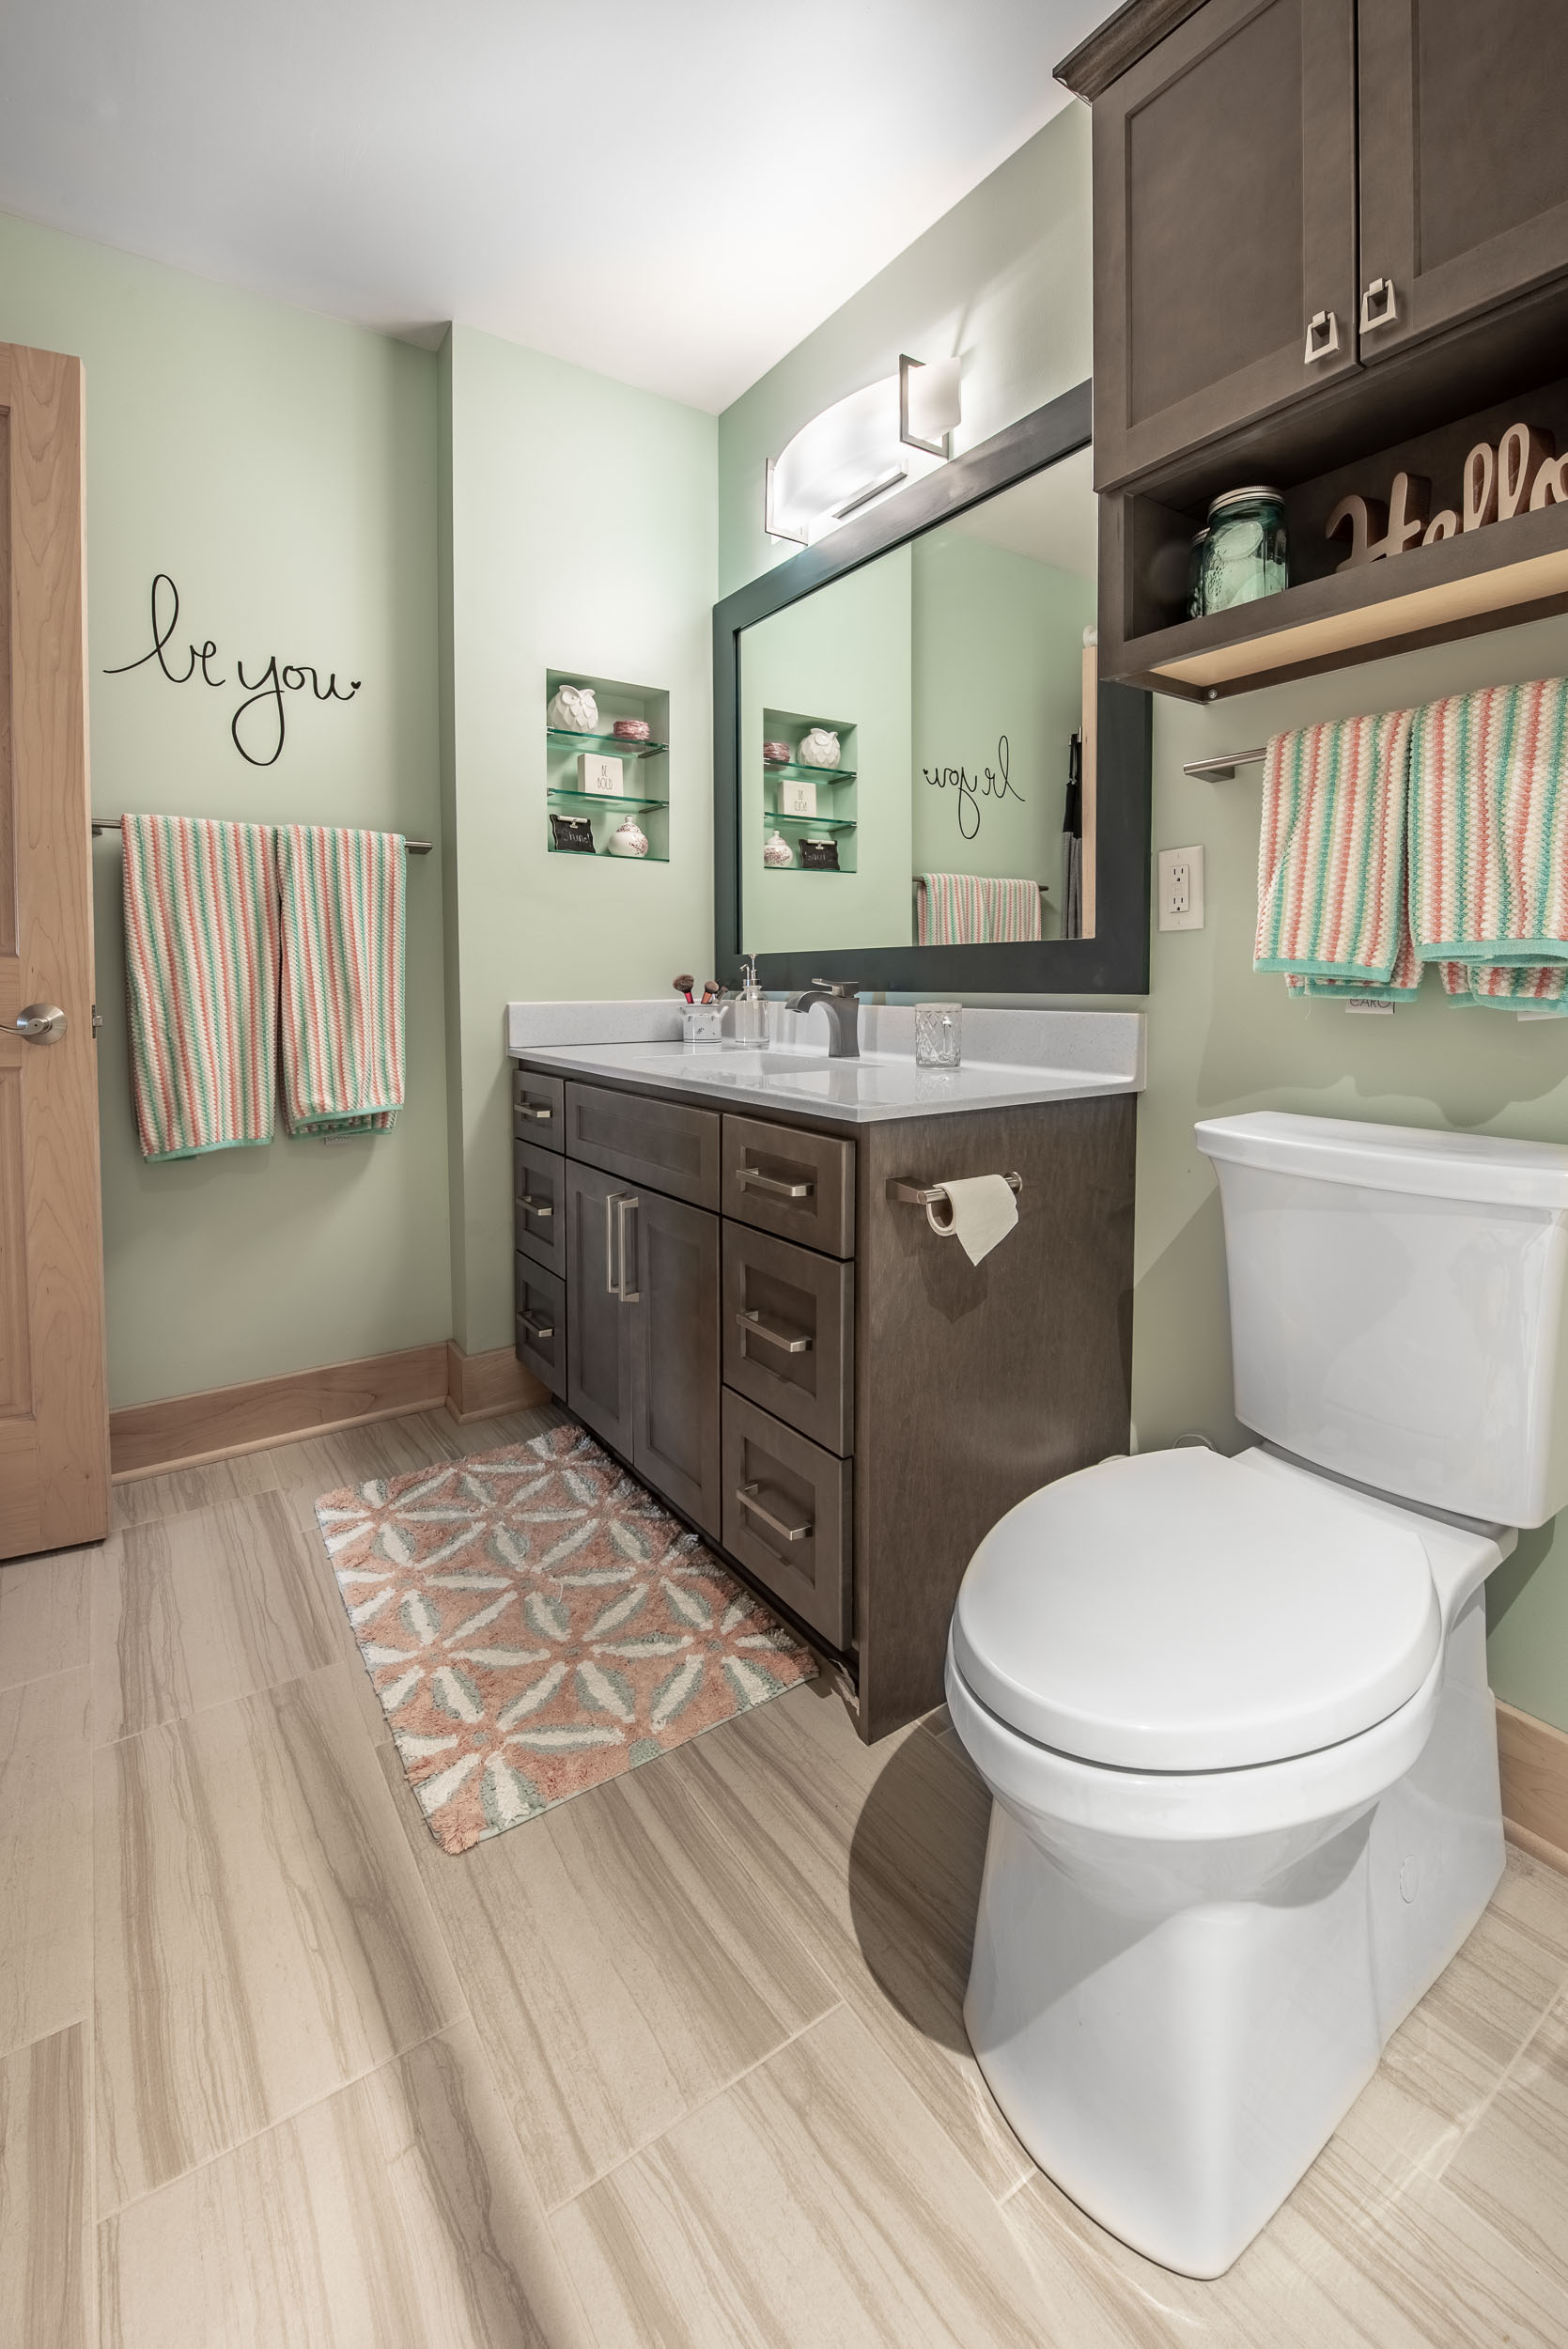 Condominium Bathroom Remodeling Madison Wisconsin-27.jpg